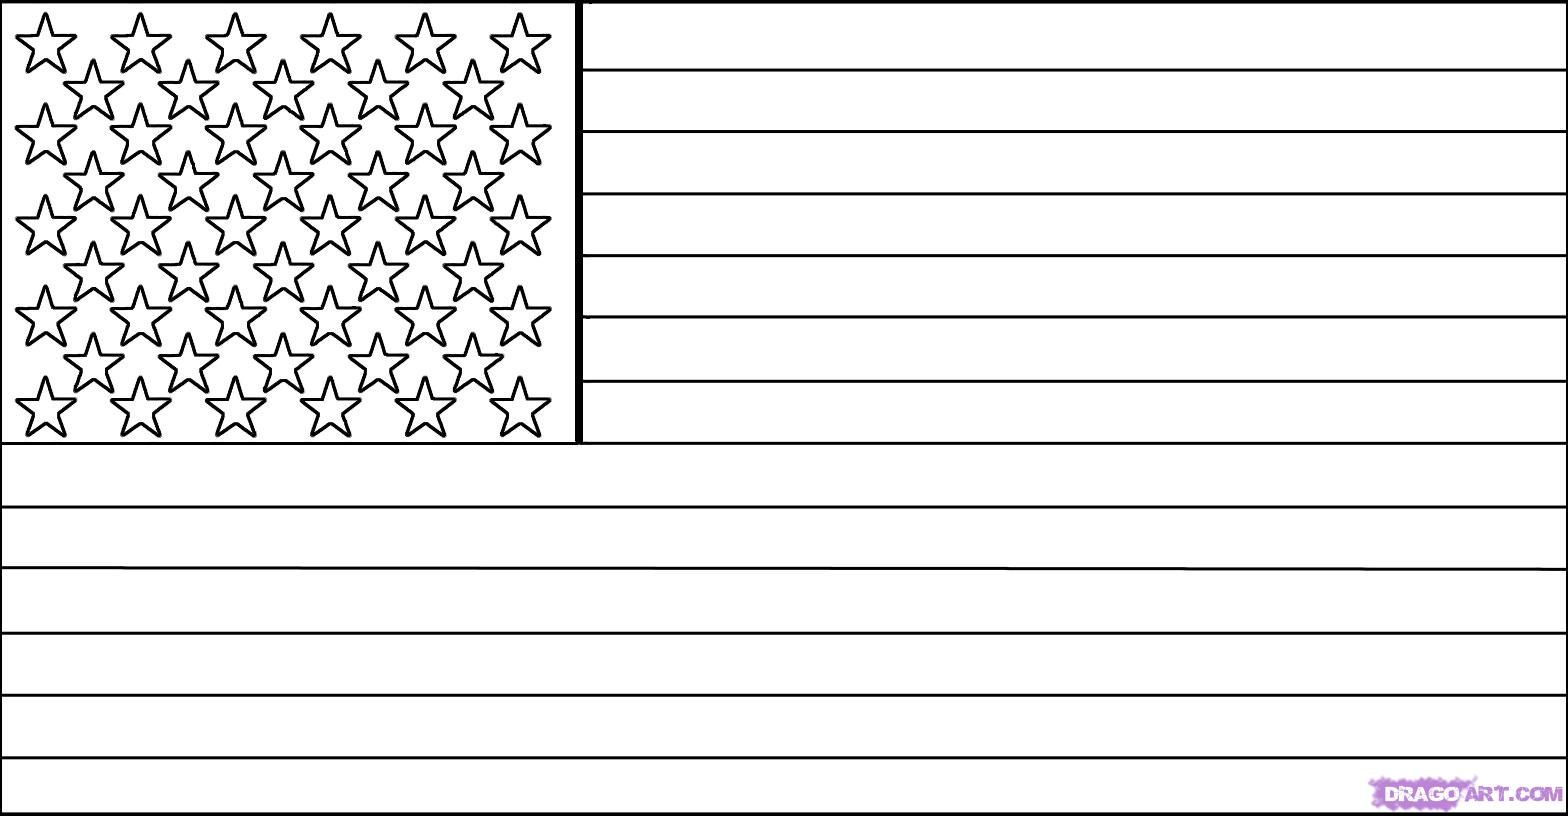 How to draw a flag of America (USA) with a pencil step by step